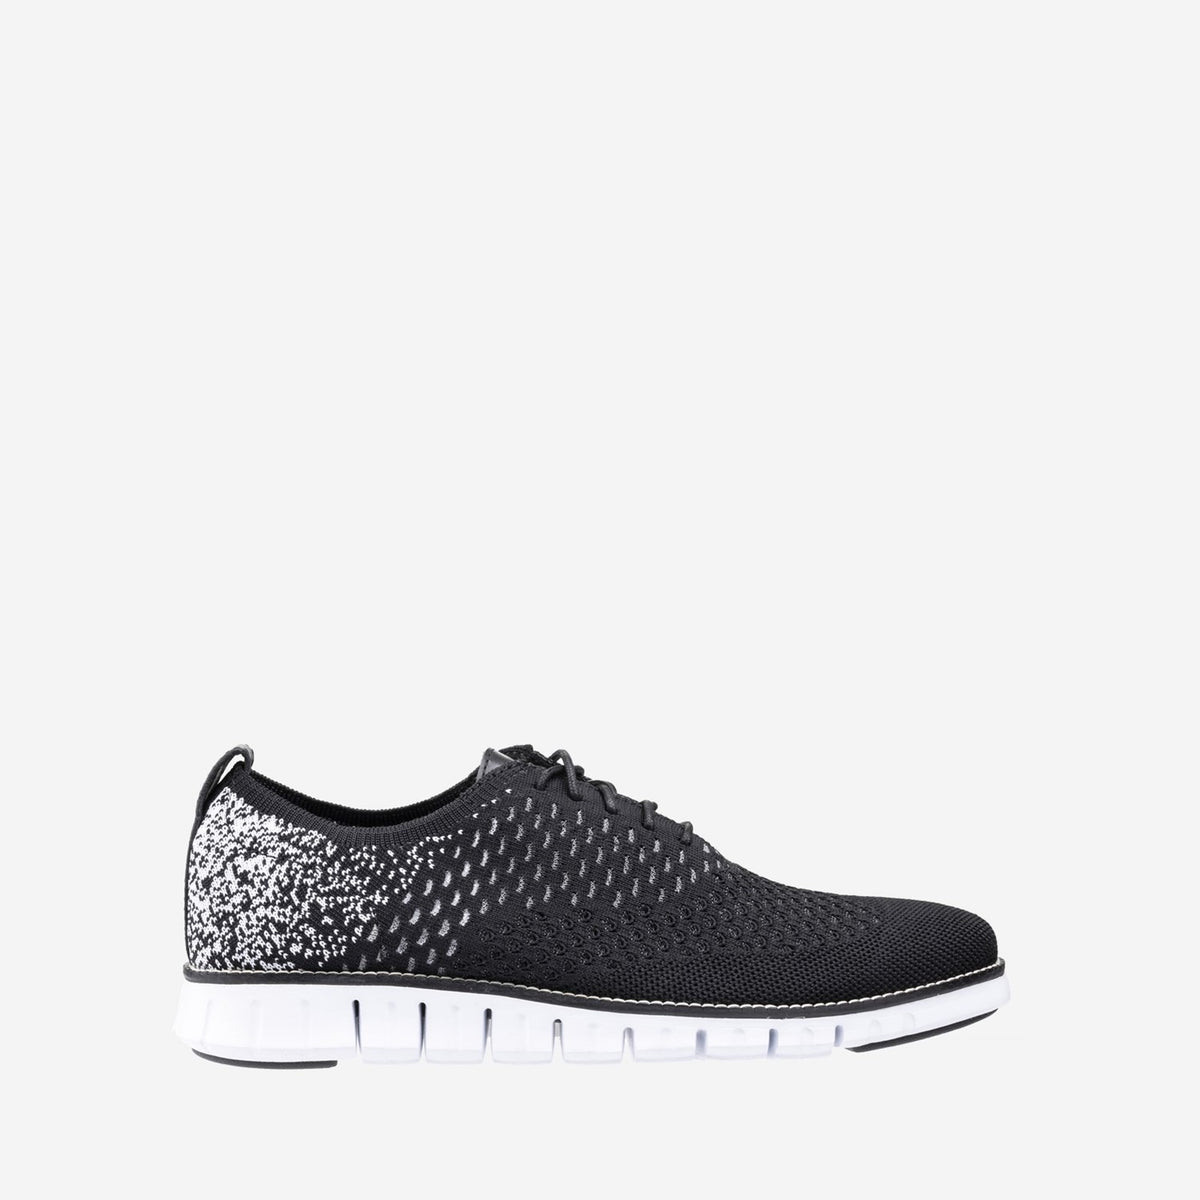 Men's ZERØGRAND Stitchlite Oxford Black/White Ombre Knit